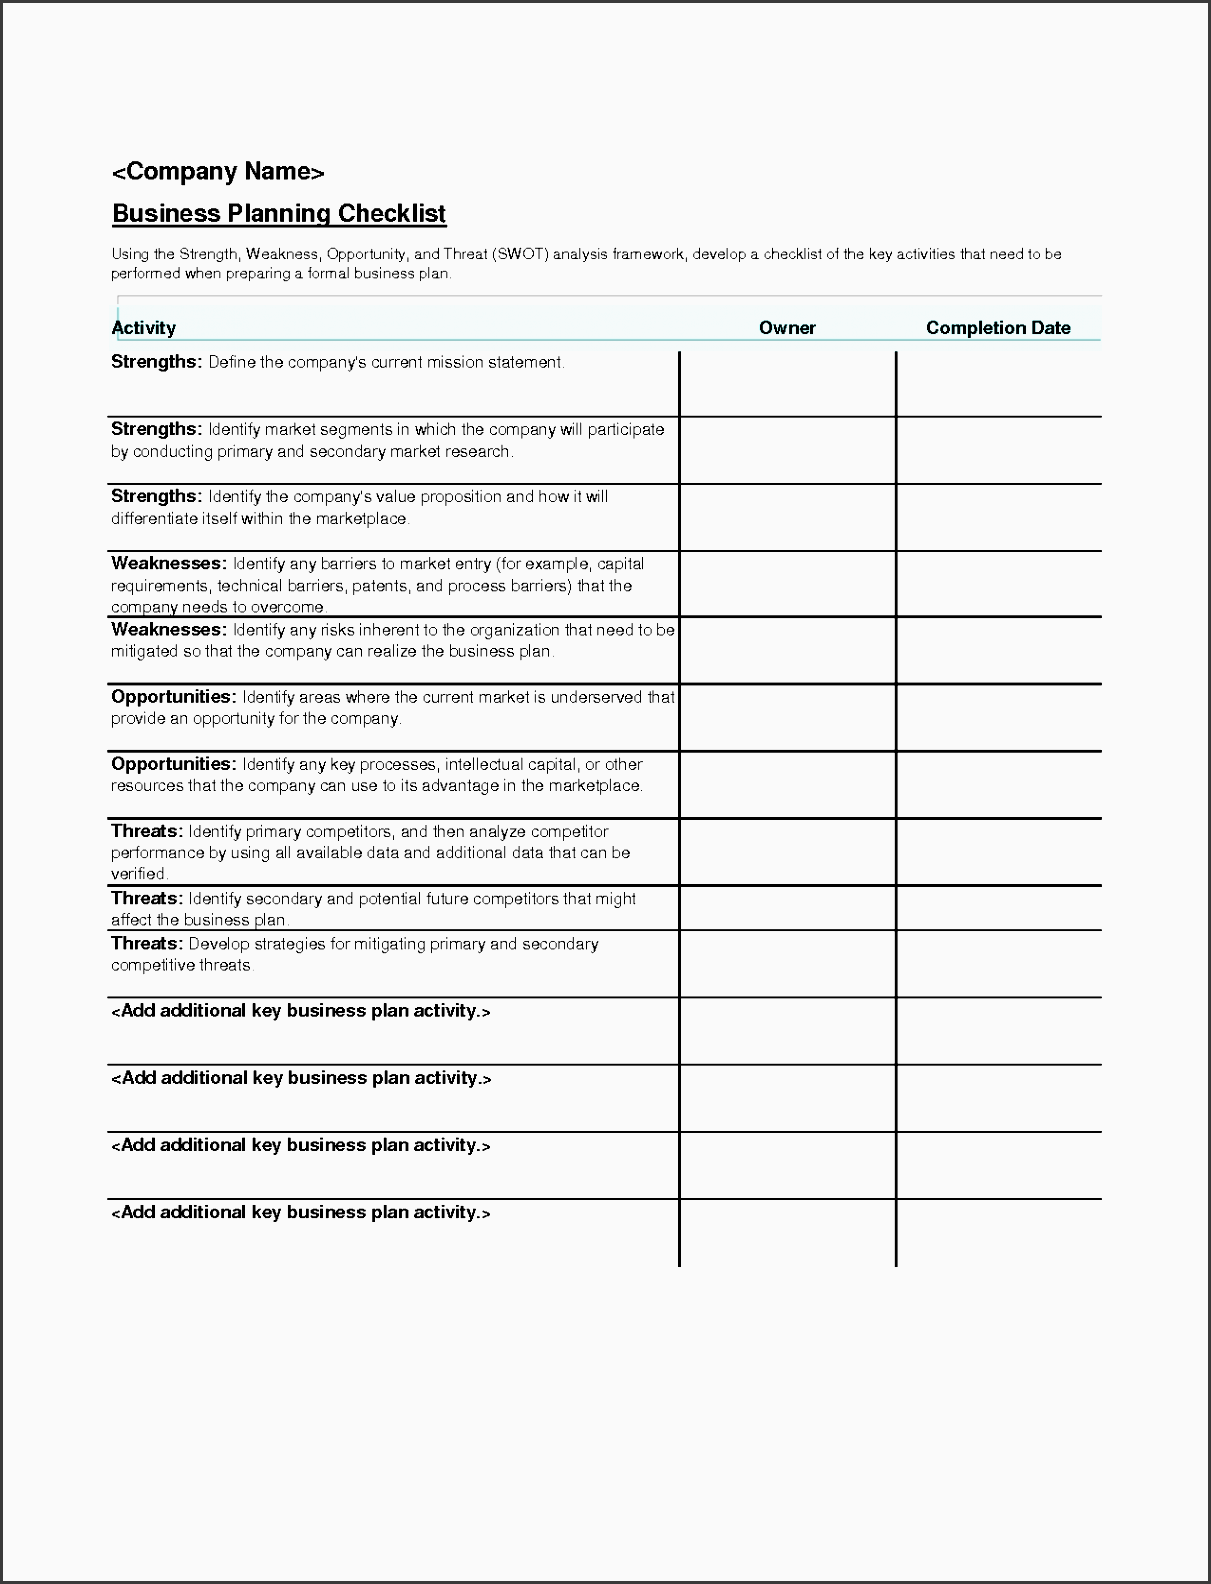 conference planning checklists koni polycode co